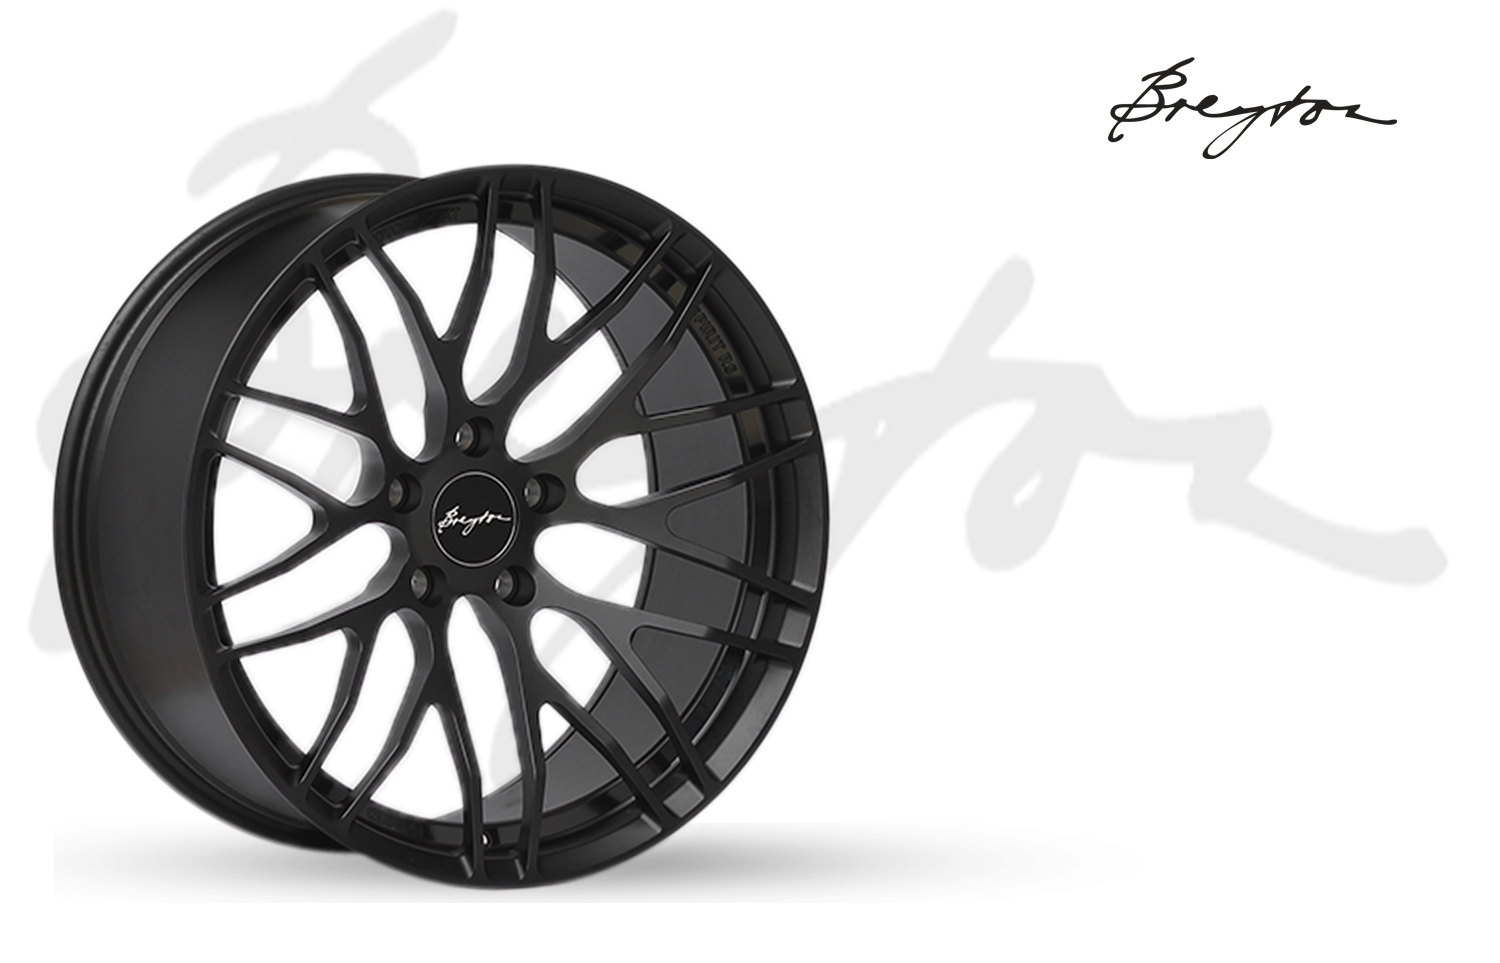 SPIRIT RS BLACK ANODIZED 19x9-10 5x120 +23+29